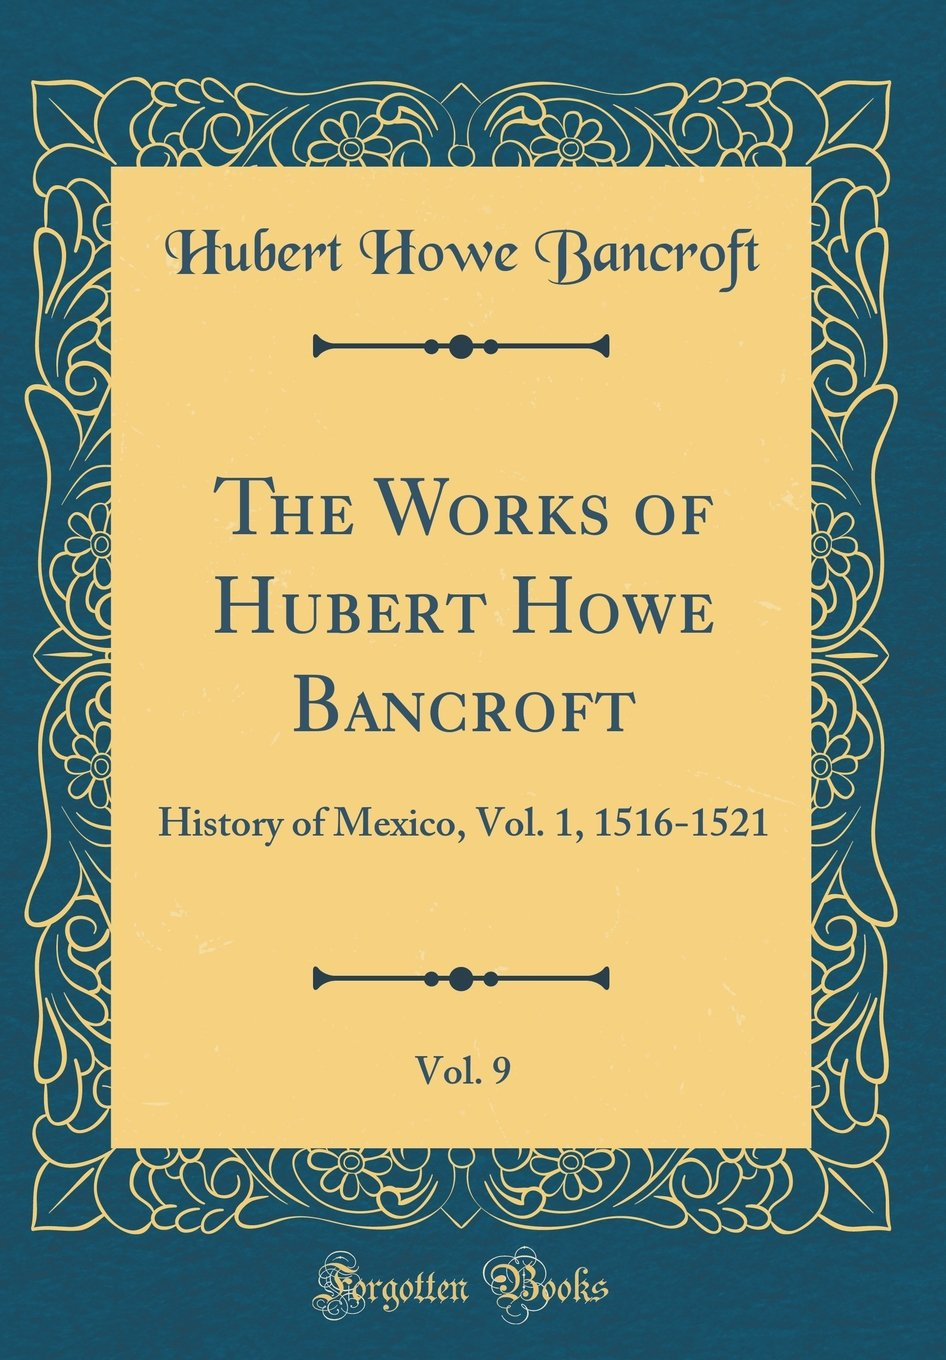 Download The Works of Hubert Howe Bancroft, Vol. 9: History of Mexico, Vol. 1, 1516-1521 (Classic Reprint) PDF